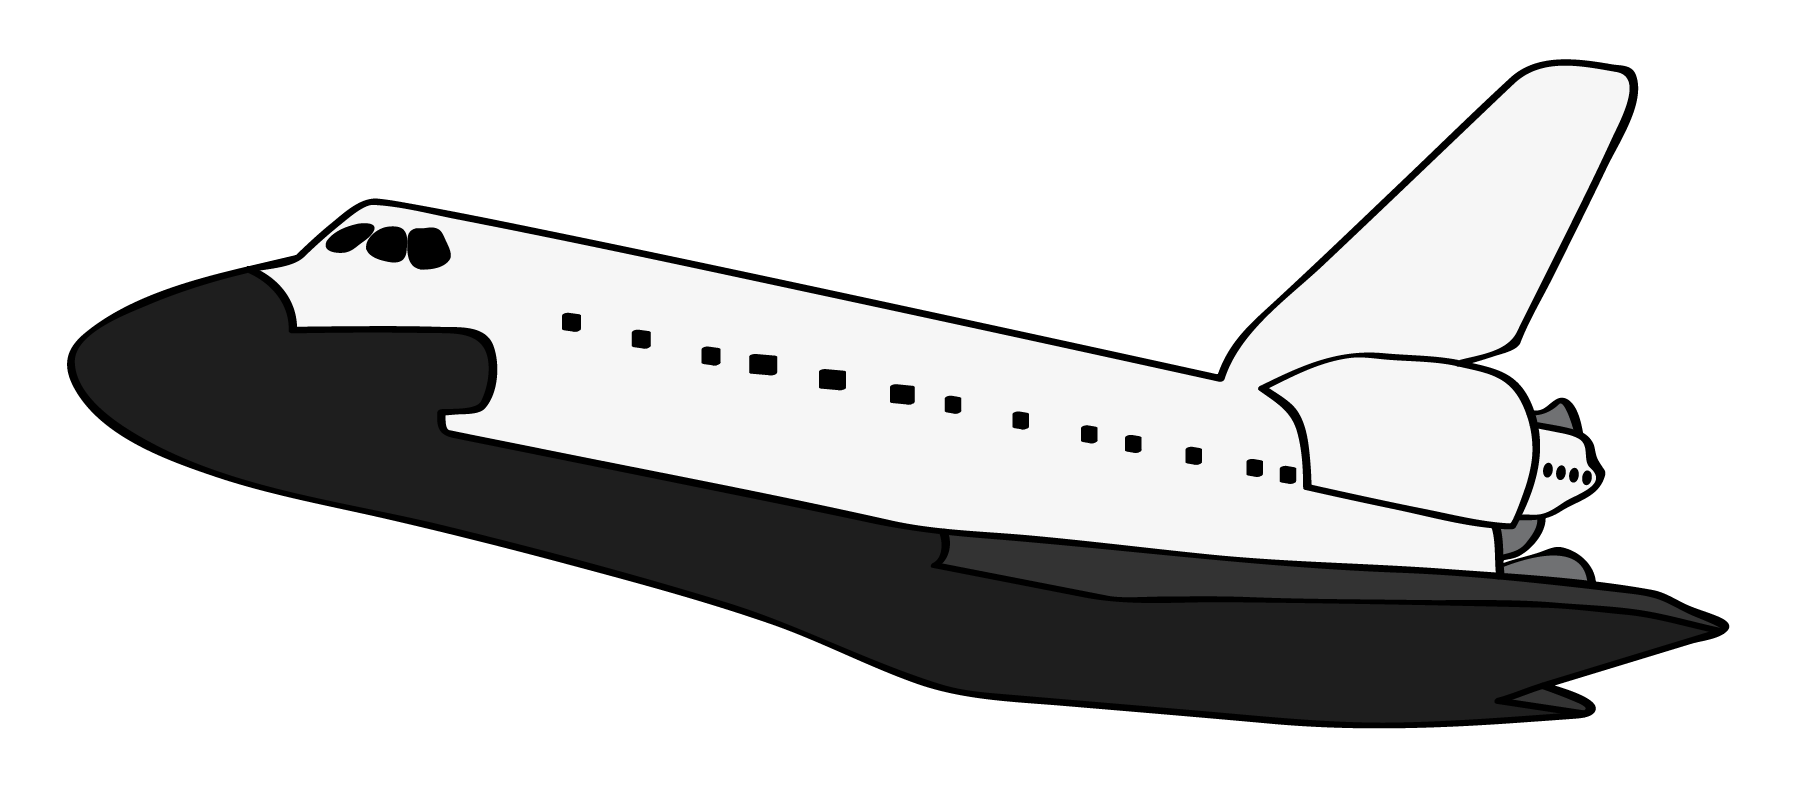 Clipart Of Space Shuttle.